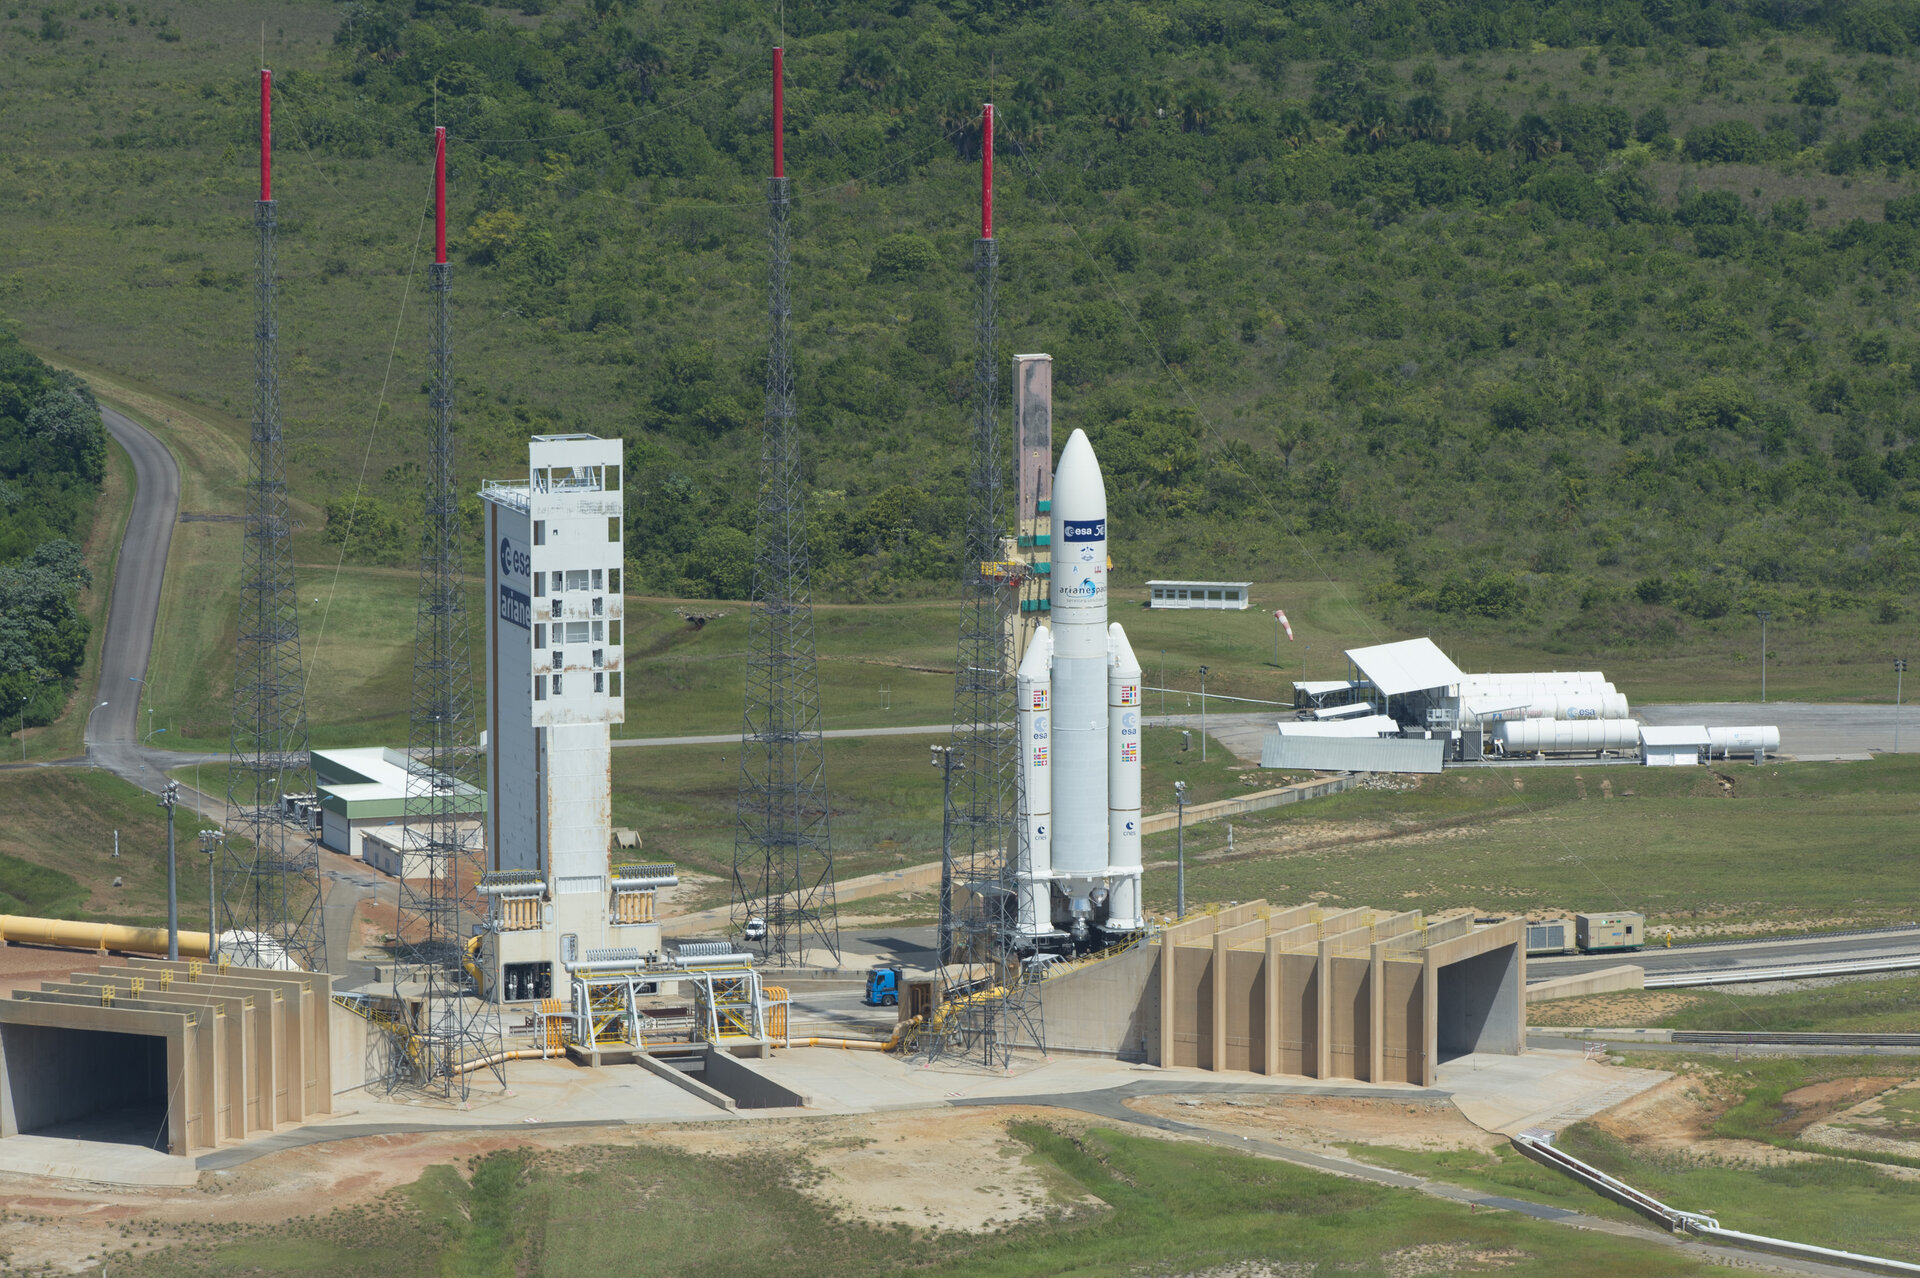 Transfer of Ariane 5 flight VA219 from the BAF to the launch pad